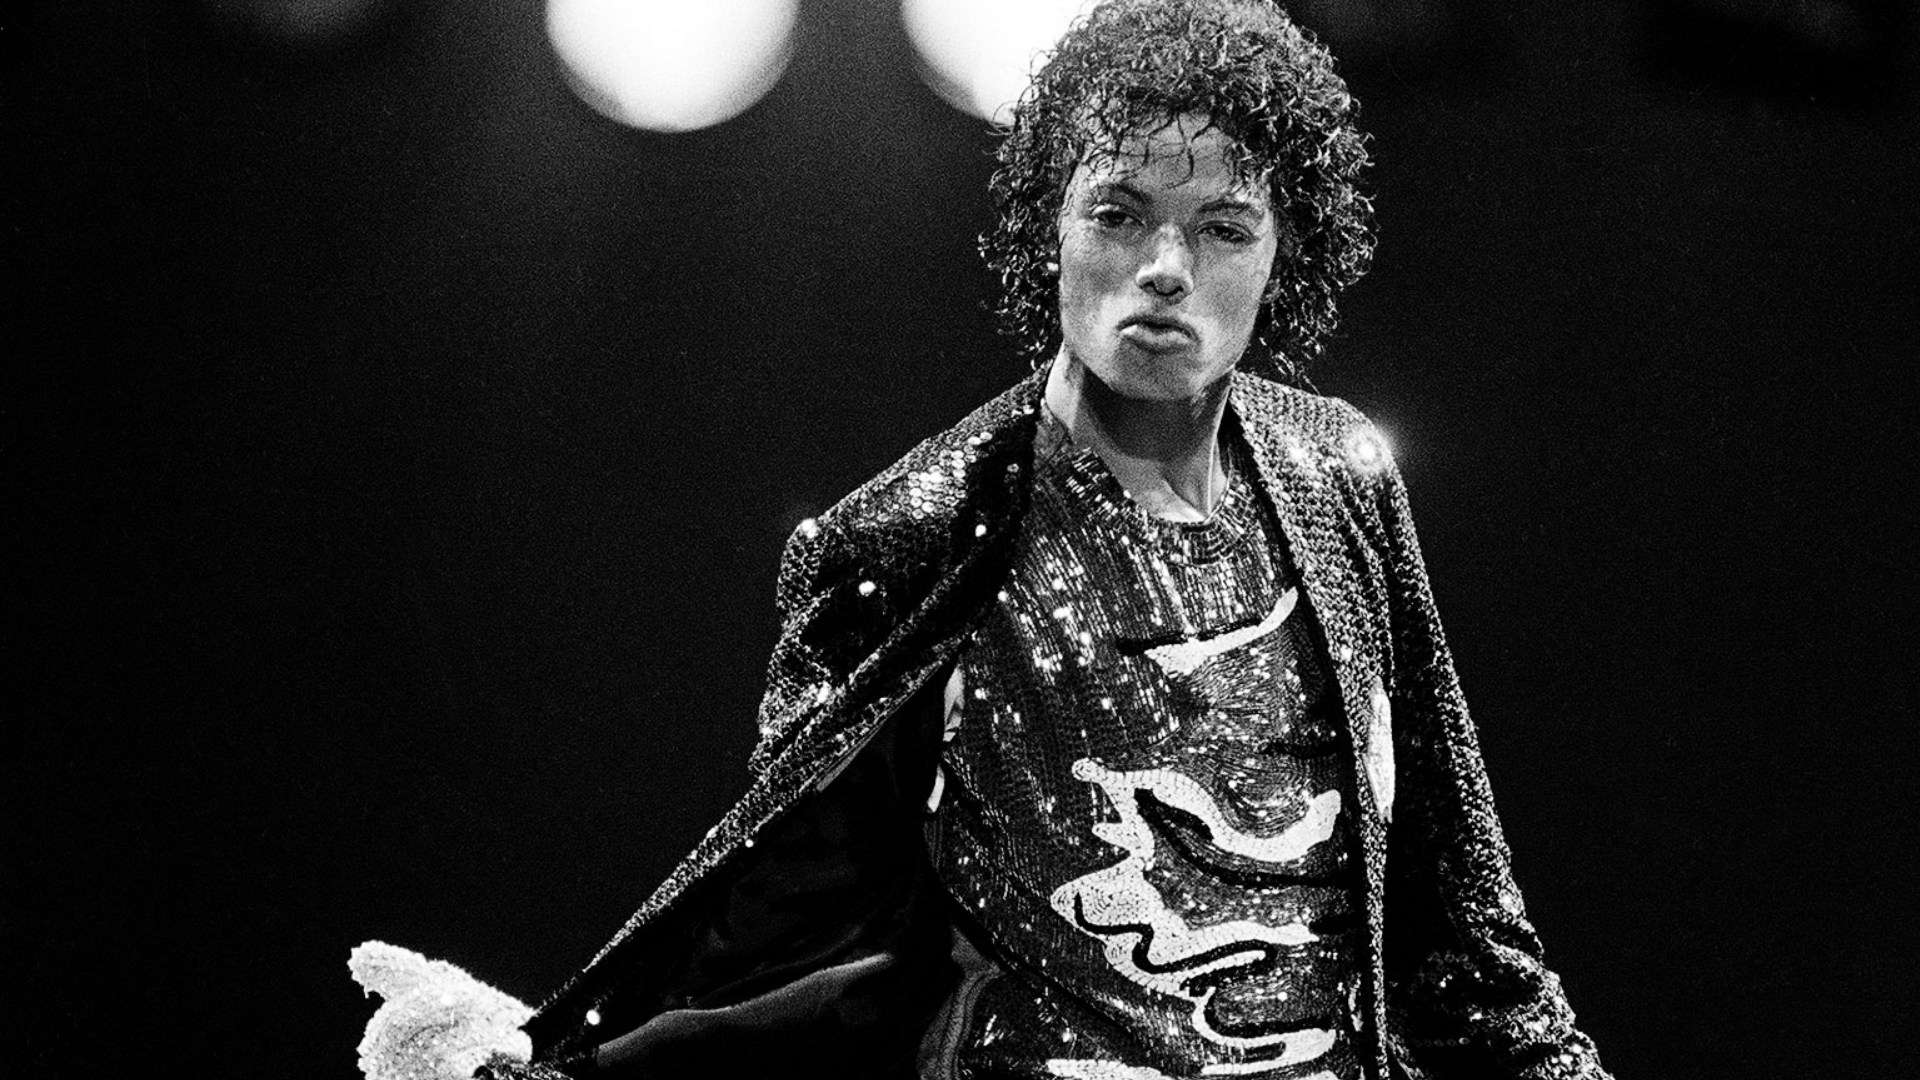 Michael Jackson Wallpaper 007